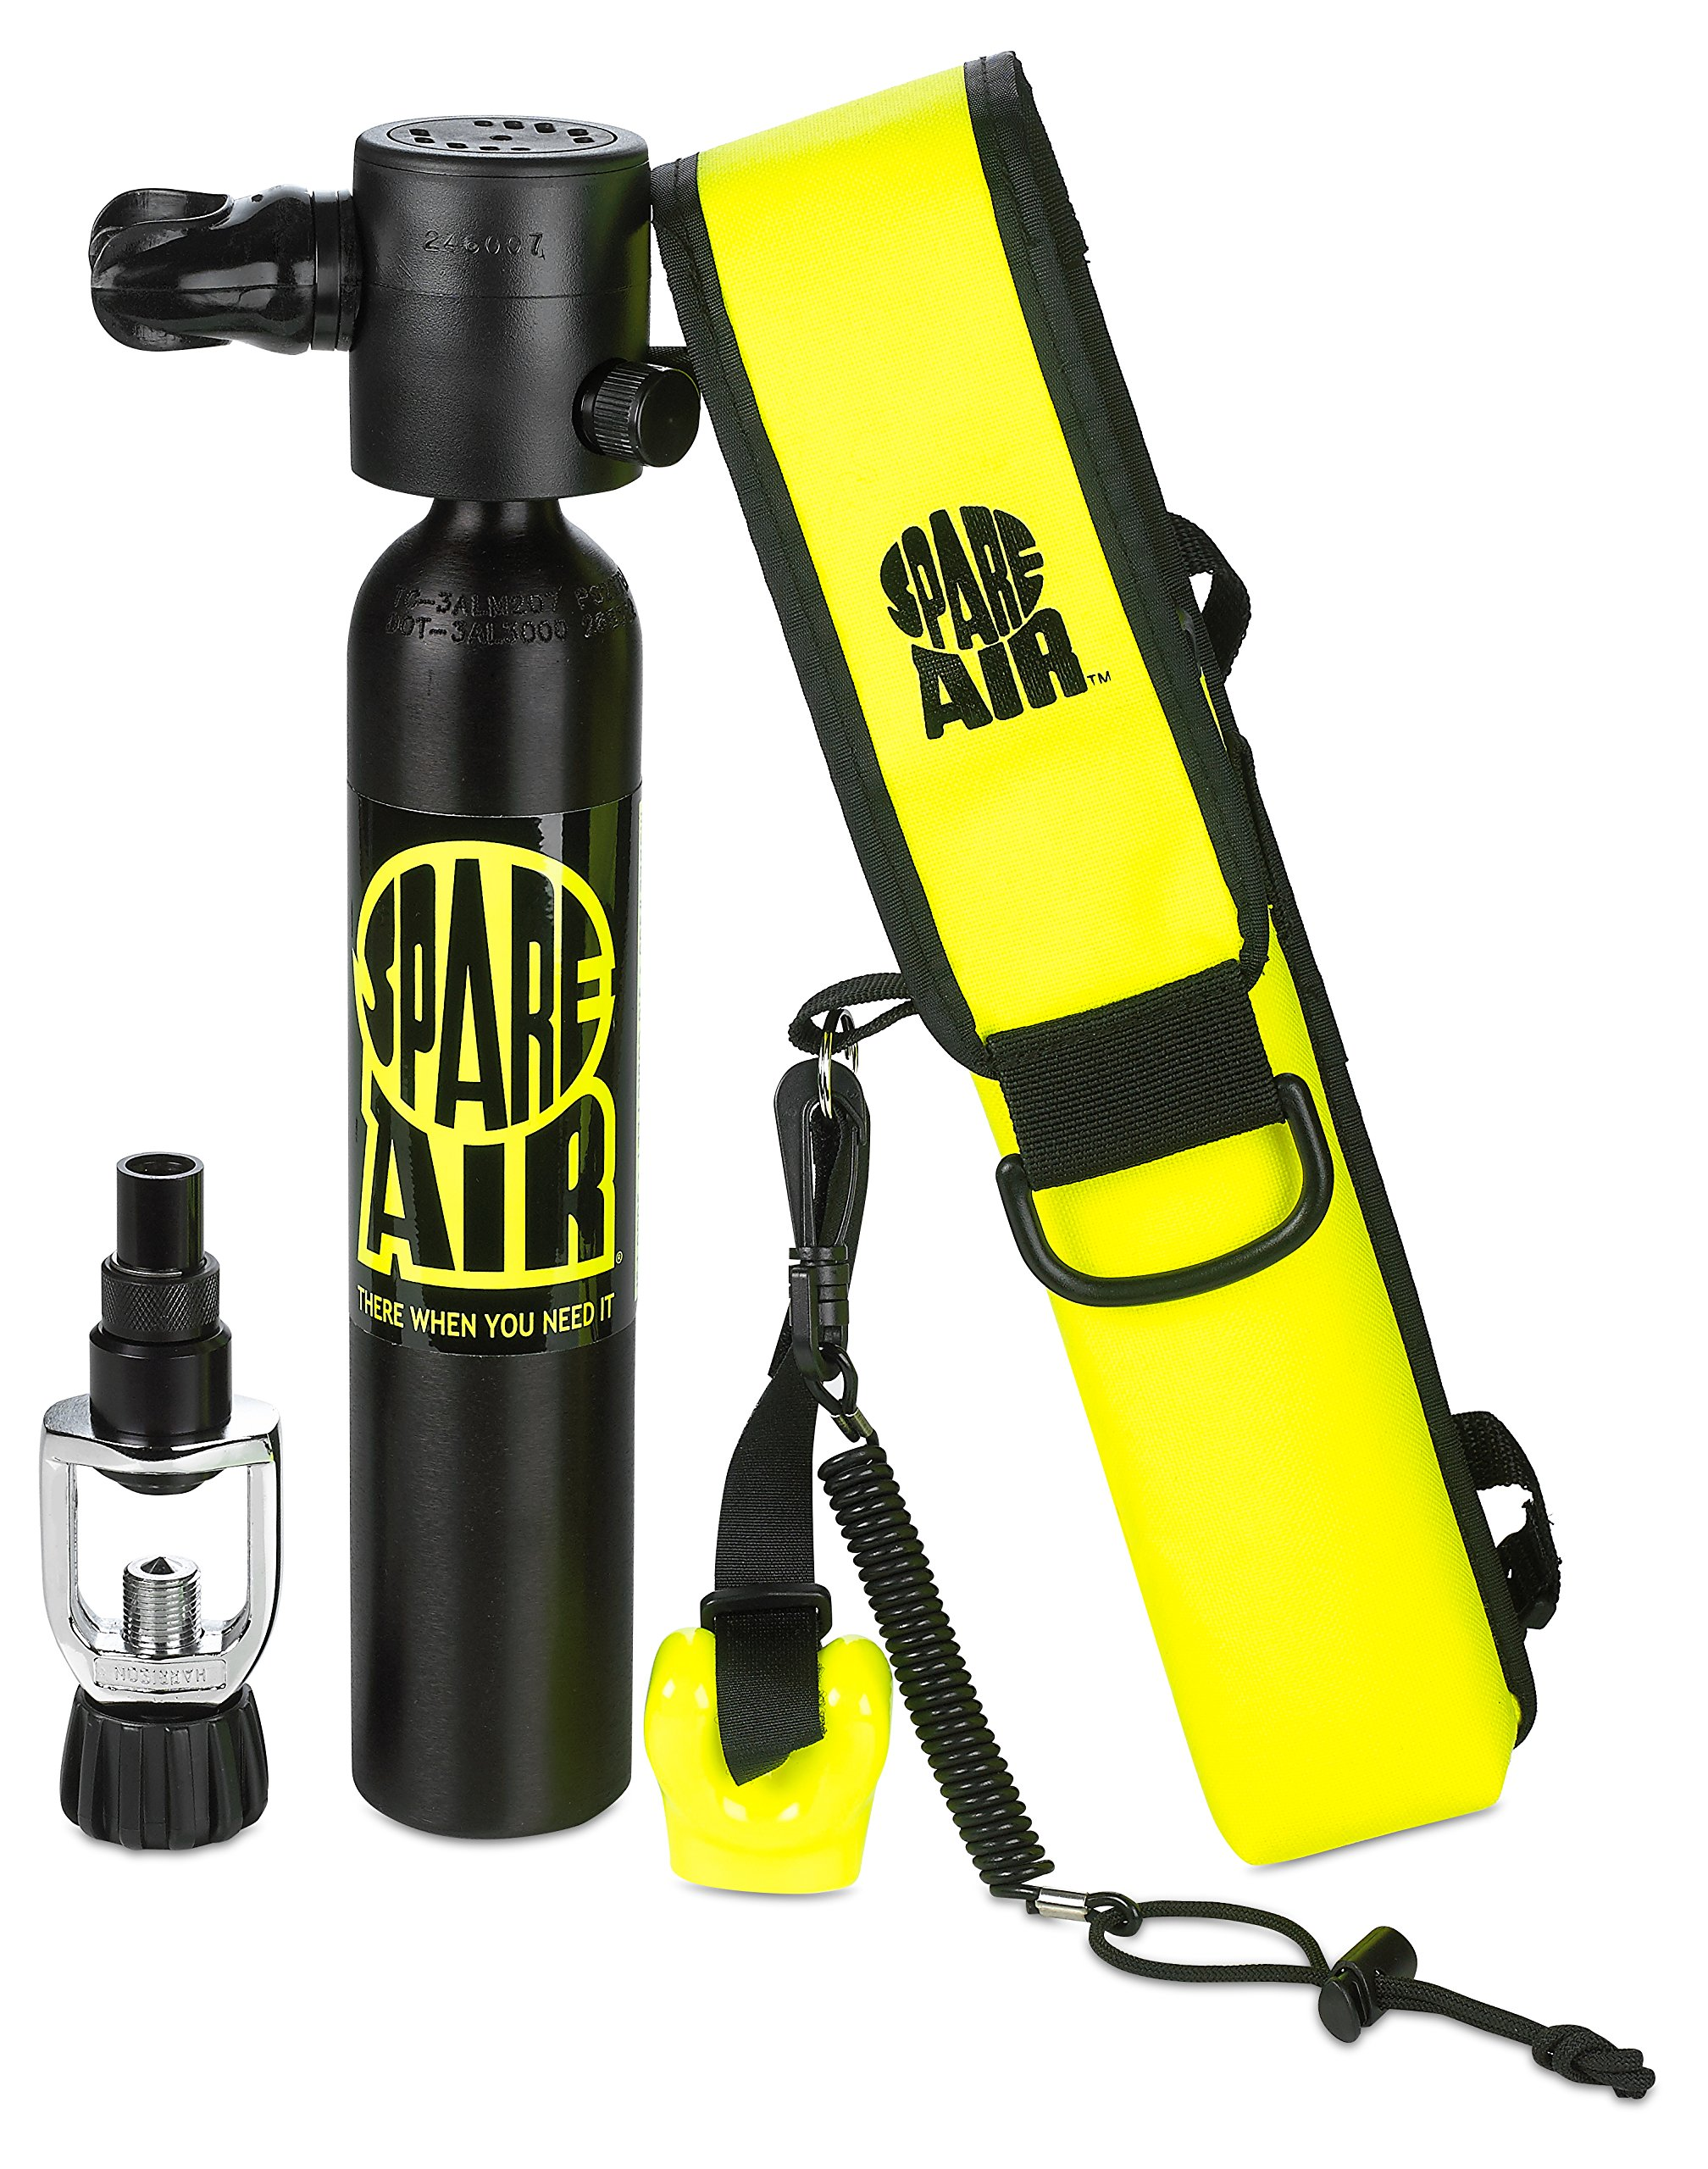 Spare-Air 3000 3.0 Kit, Yellow by Innovative Scuba Concepts